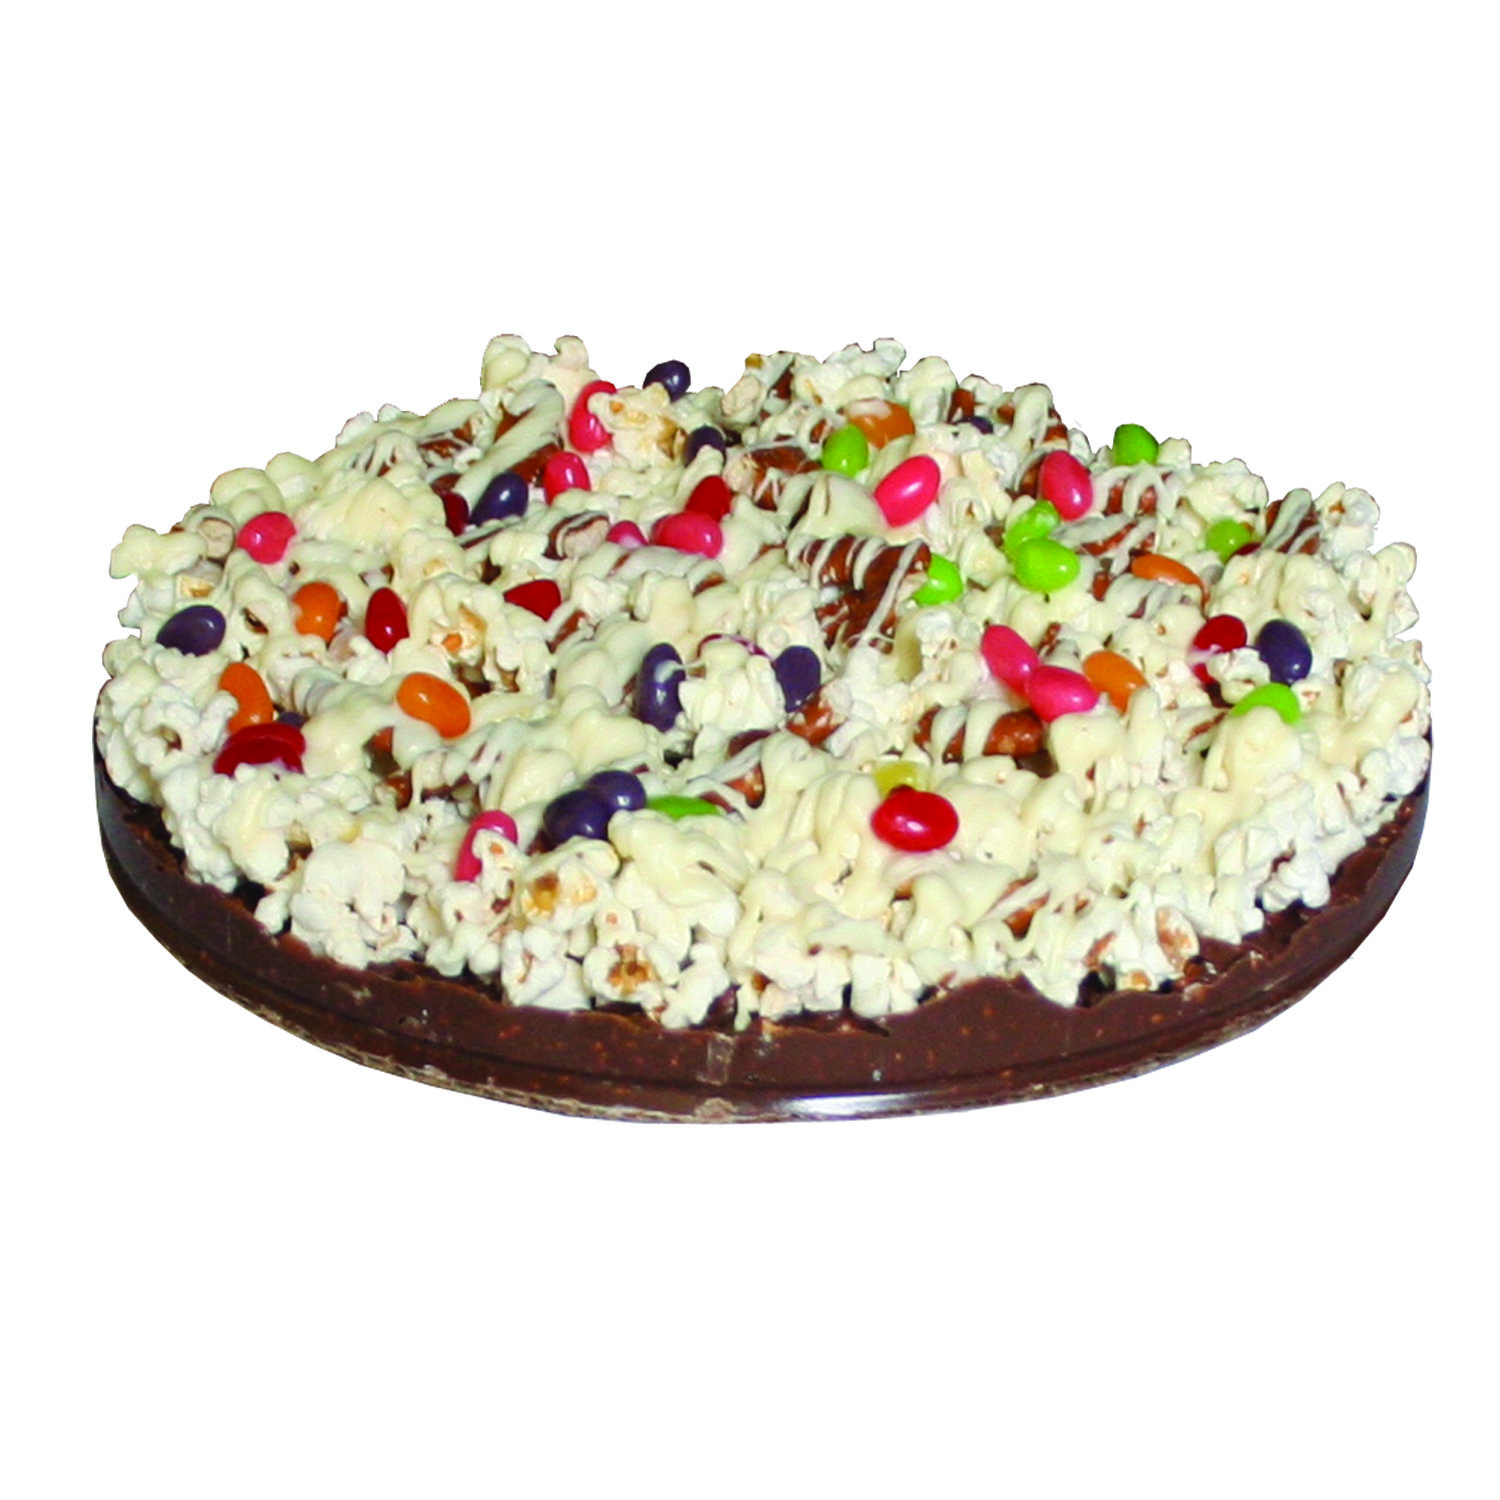 Gourmet Chocolate Pizza - Pizazz™ - Mini - Gluten Free - Supreme - Jelly Bean - Wholesale W-MIGFSUJB